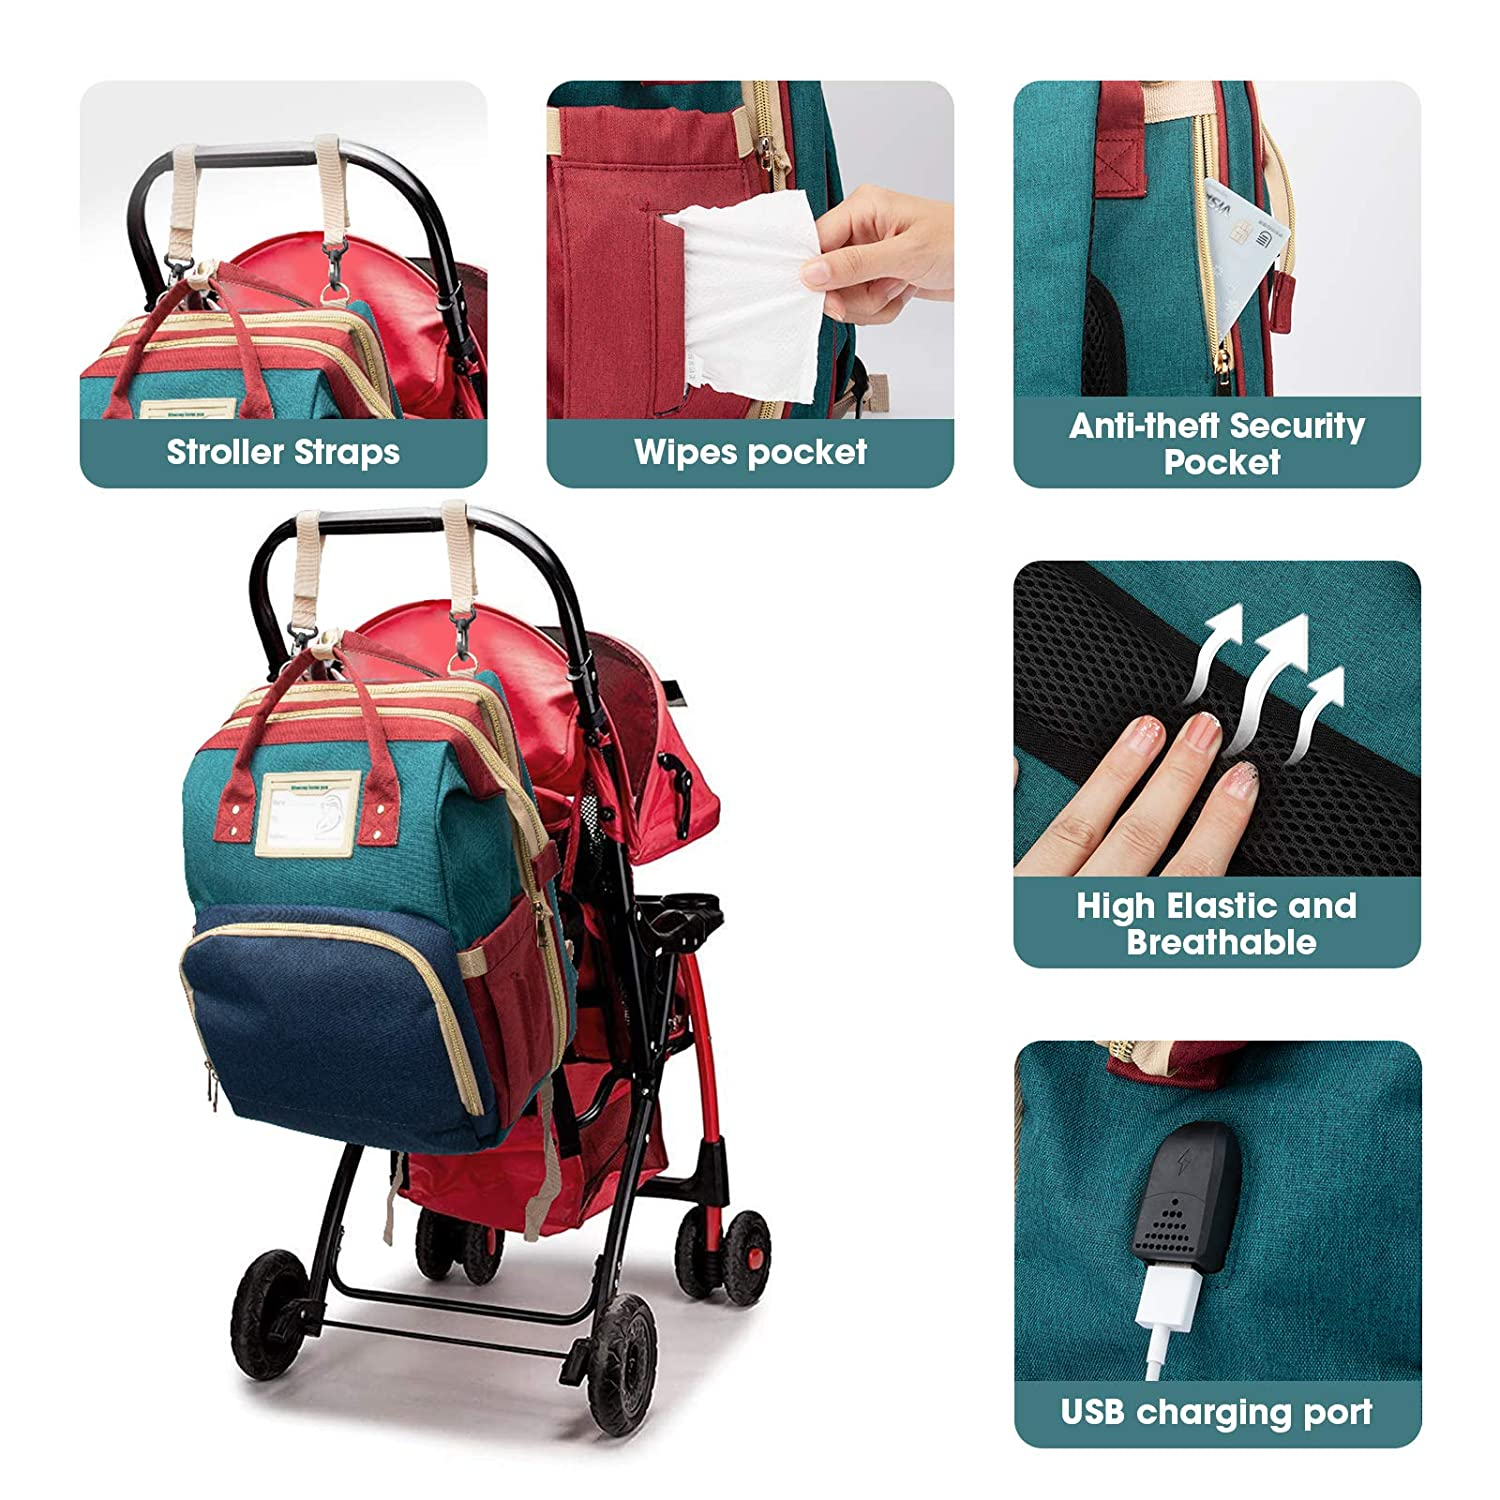 Diaper Bag Backpack Travel Bassinet Portable Baby Bed, Baby Diaper Bag Backpack with Changing Station, Multifunctional Baby Bassinet Travel Cot, Foldable Baby Crib with Changing Pad, Waterproof